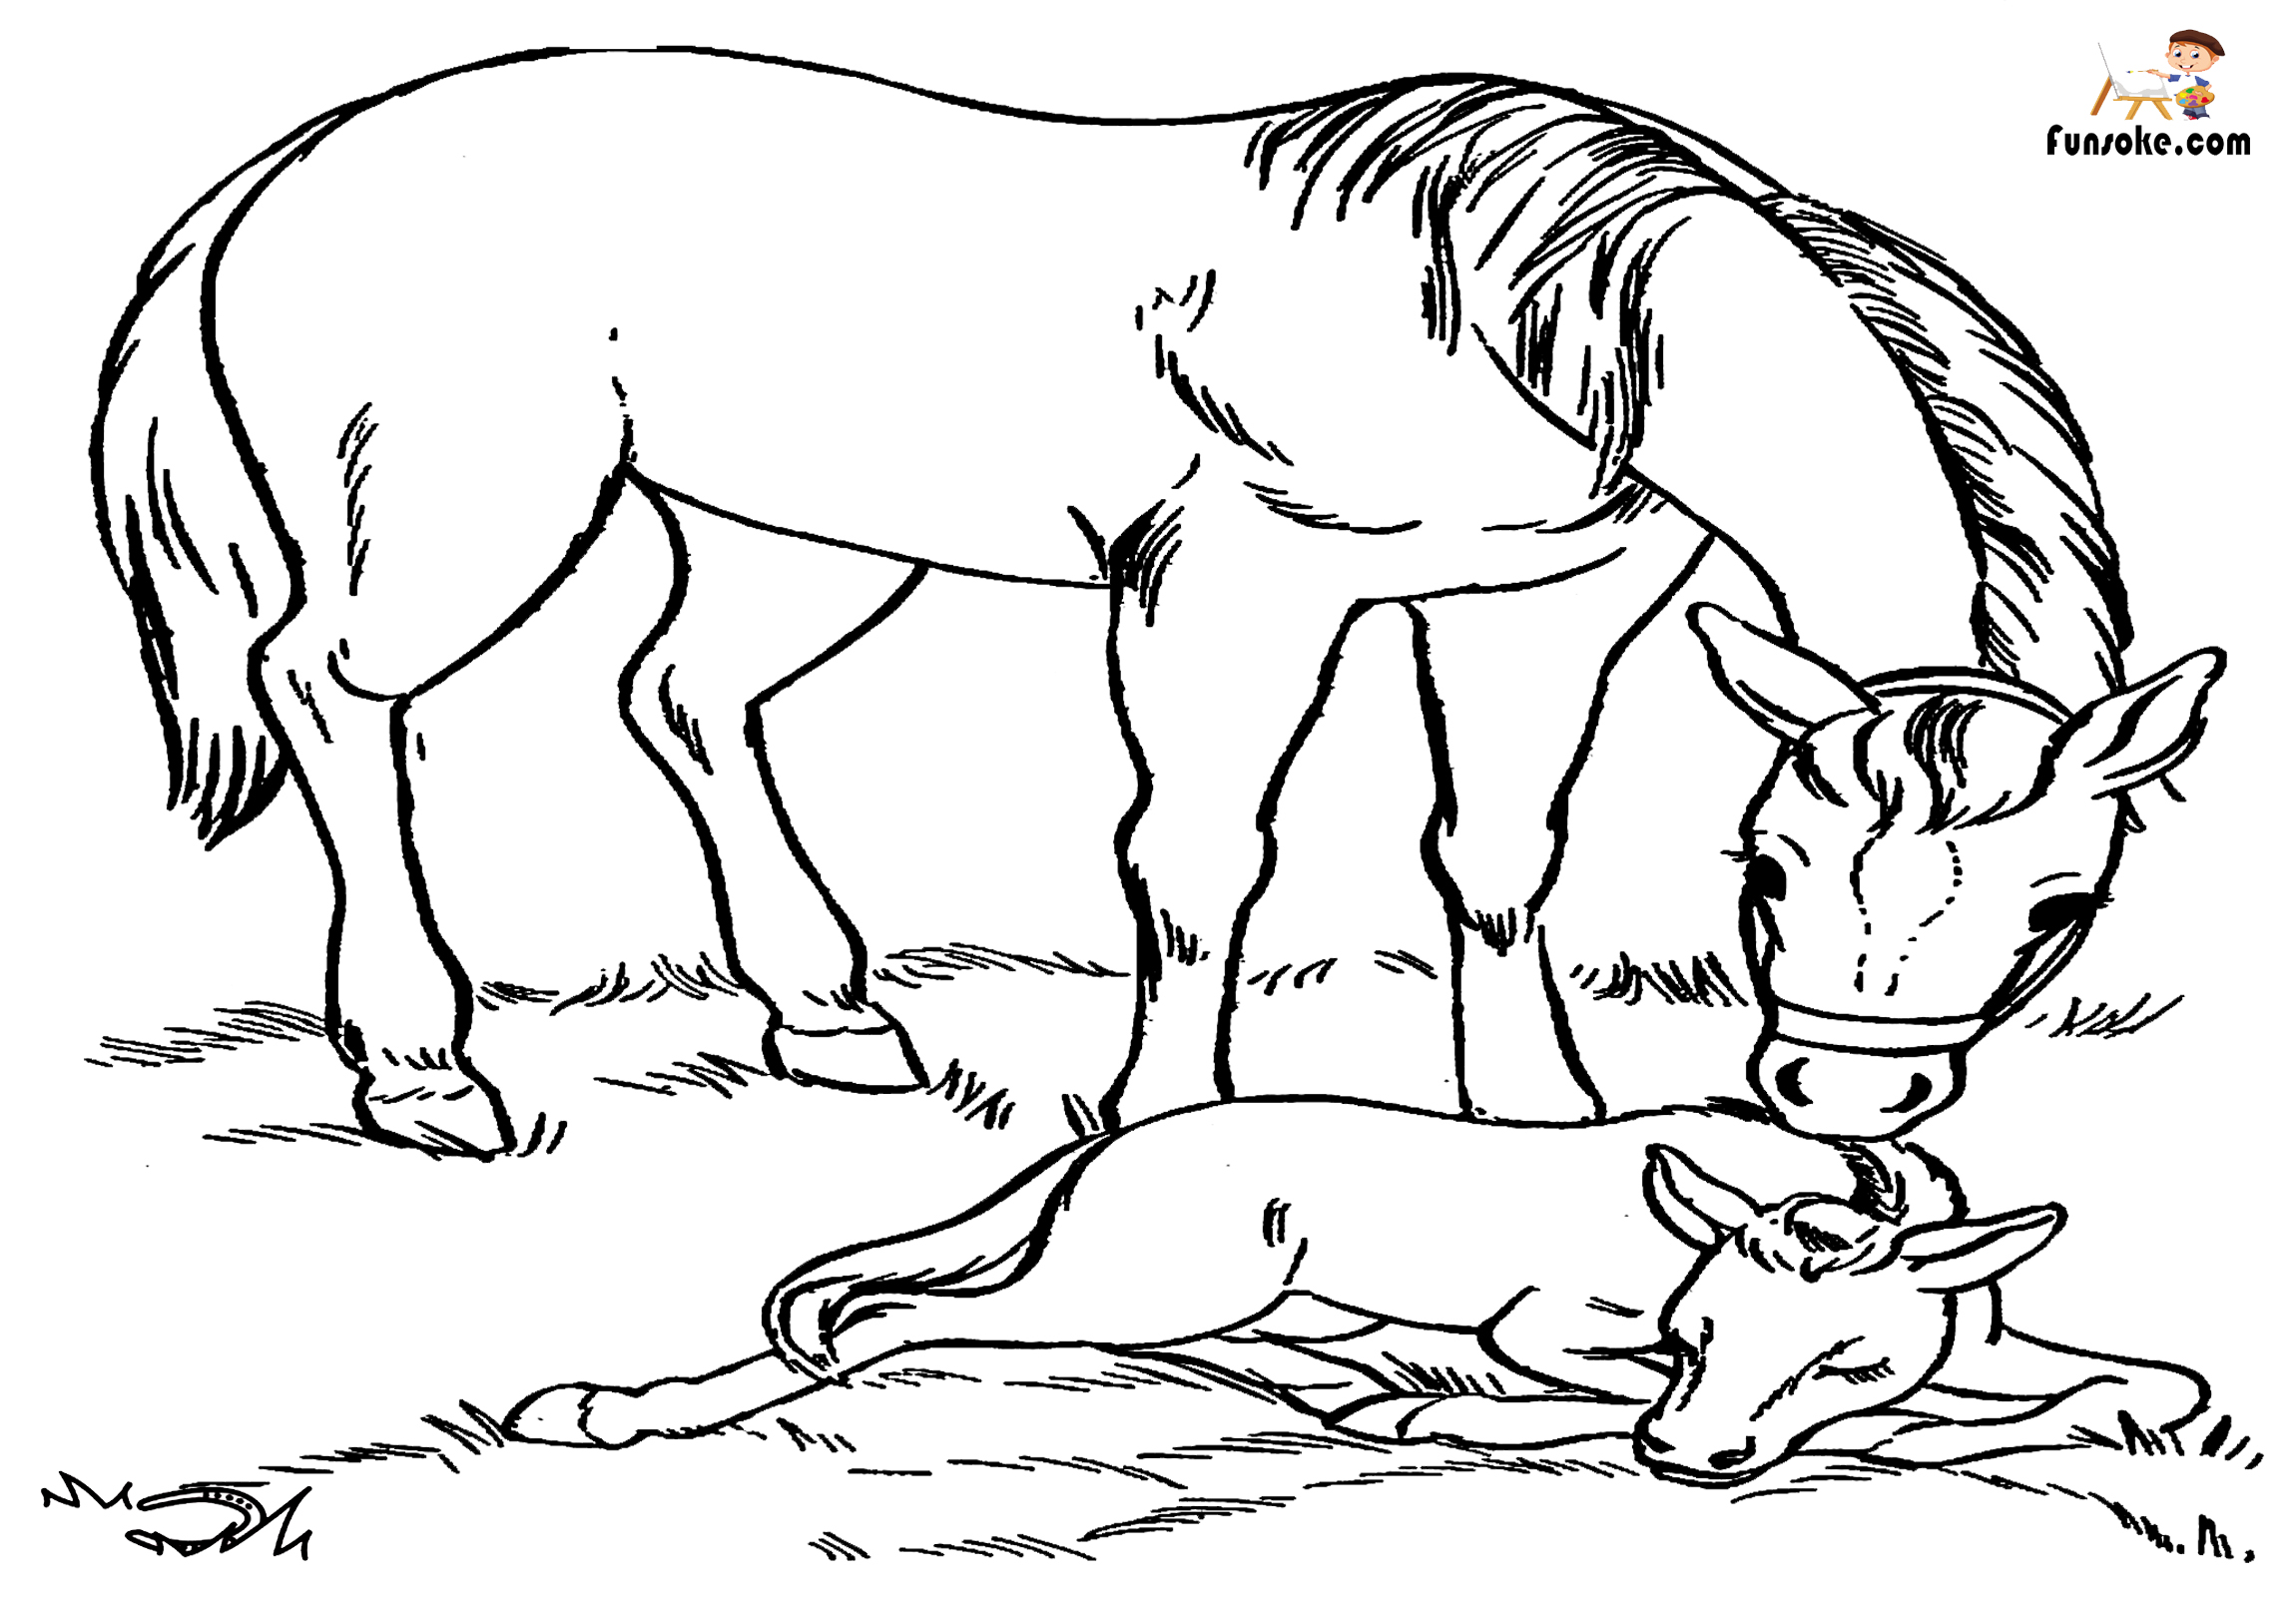 coloring pages of horses to print coloring pages of horses printable free coloring sheets to coloring horses print pages of